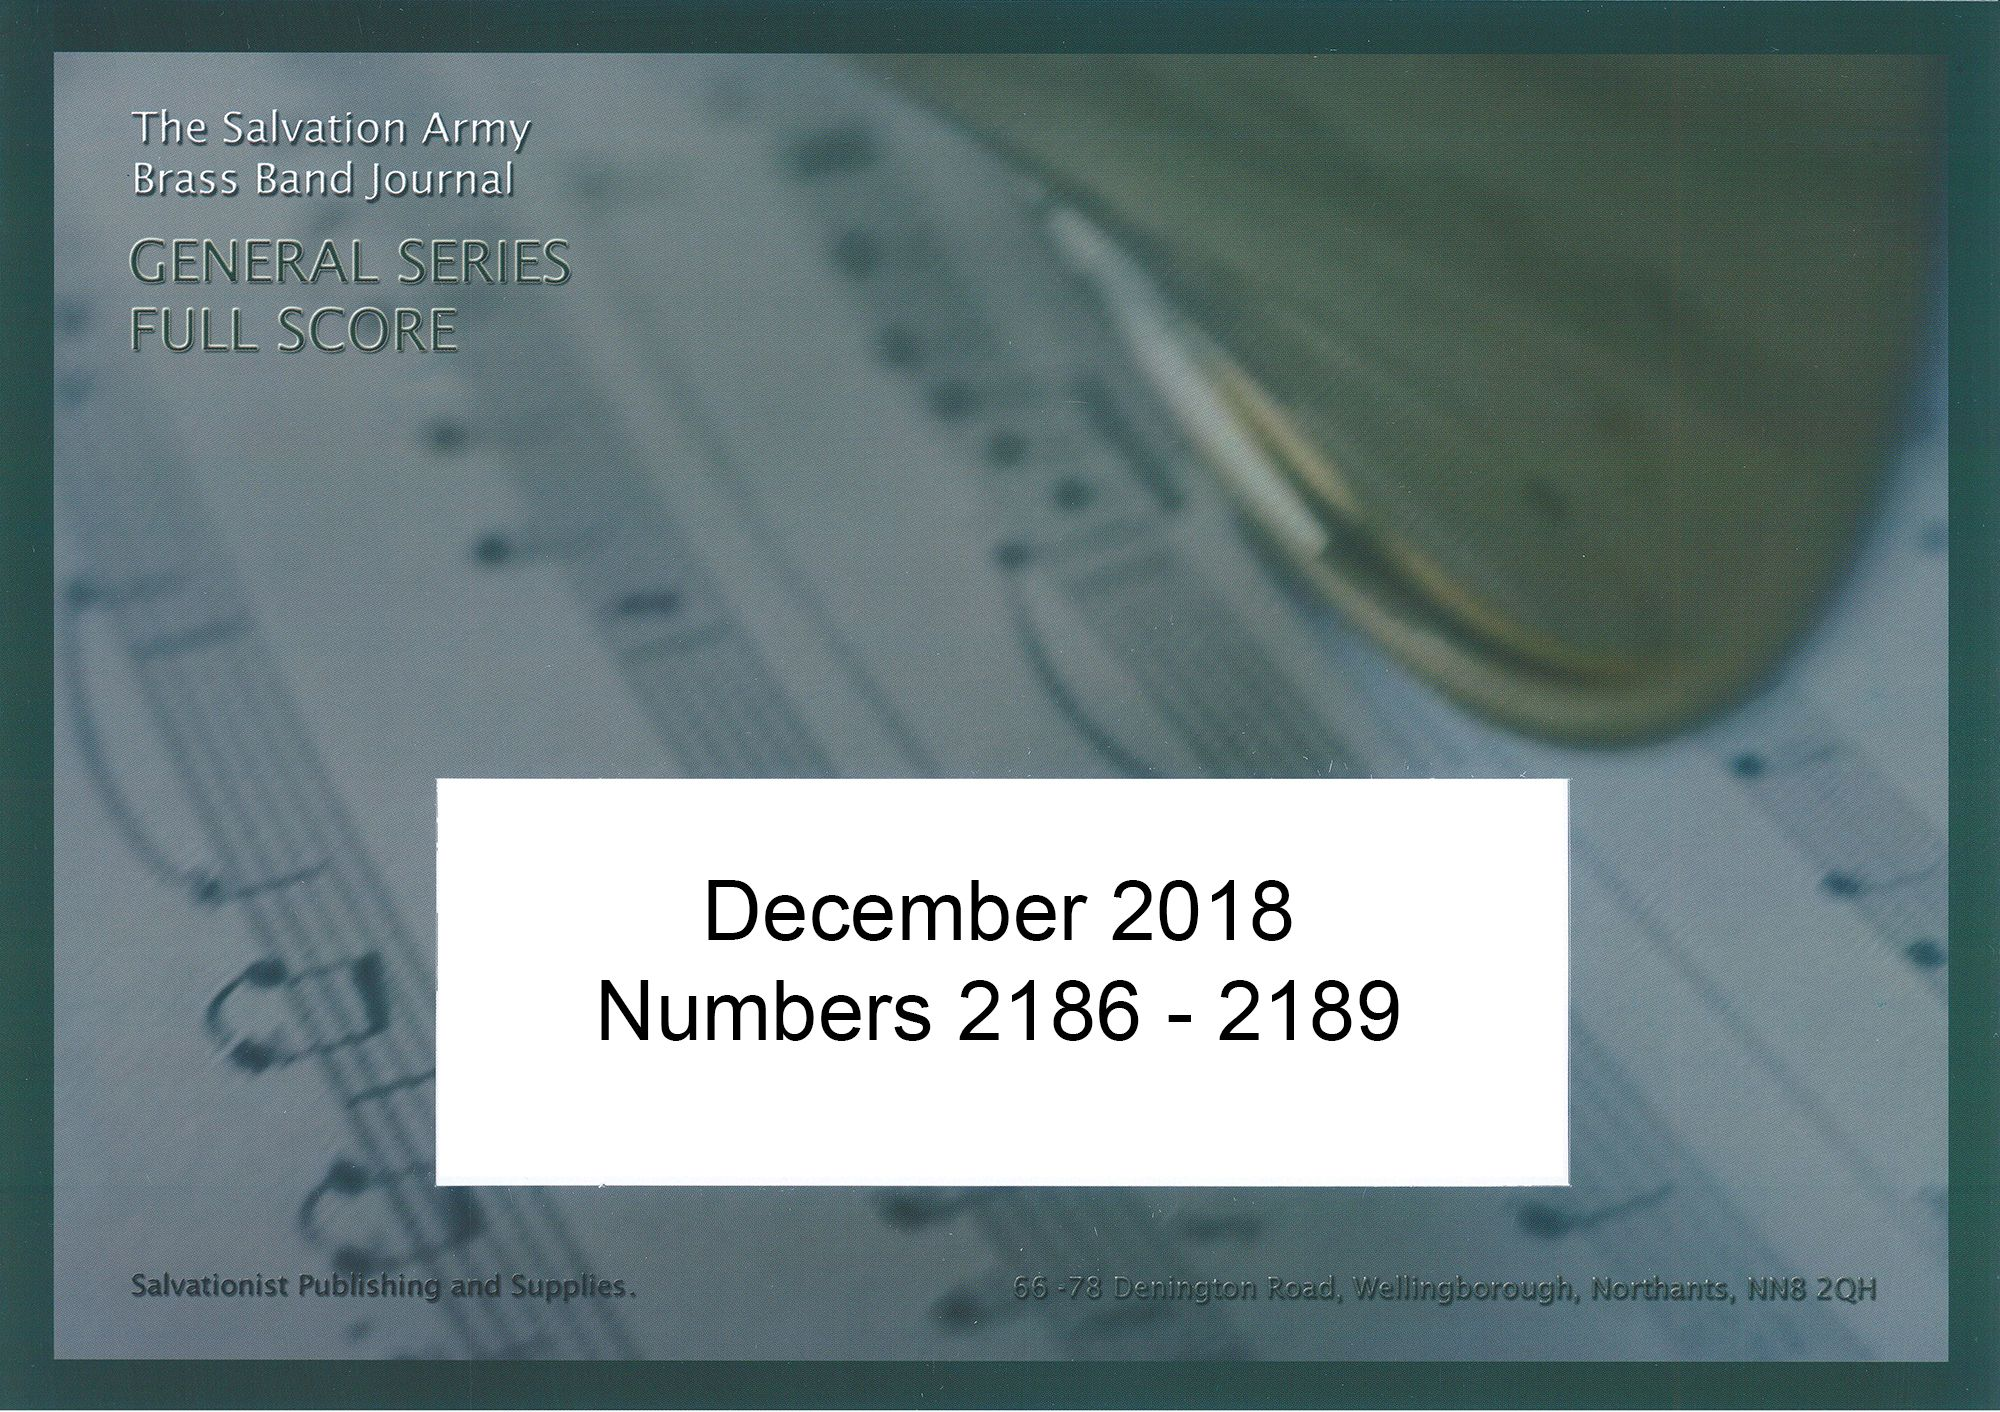 General Series Band Journal December 2018 Numbers 2186 - 2189